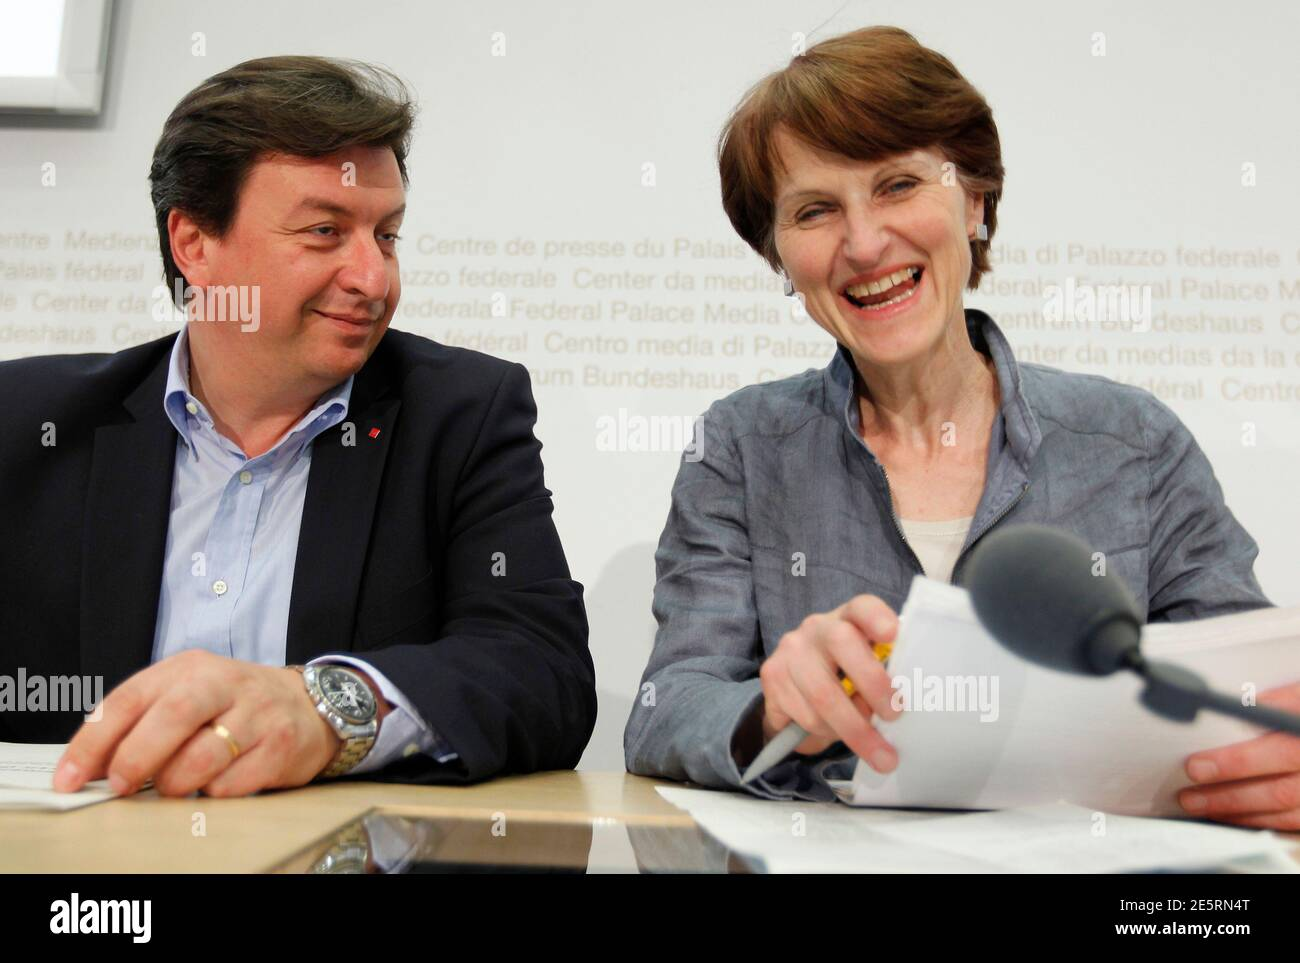 National Councillor Franziska Teuscher (R) and Swiss Construction Workers Union UNIA member Corrado Pardini attend a news conference on the start of the nuclear phaseout initiative in Bern May 19, 2011. REUTERS/Ruben Sprich  (SWITZERLAND - Tags: POLITICS) Stock Photo